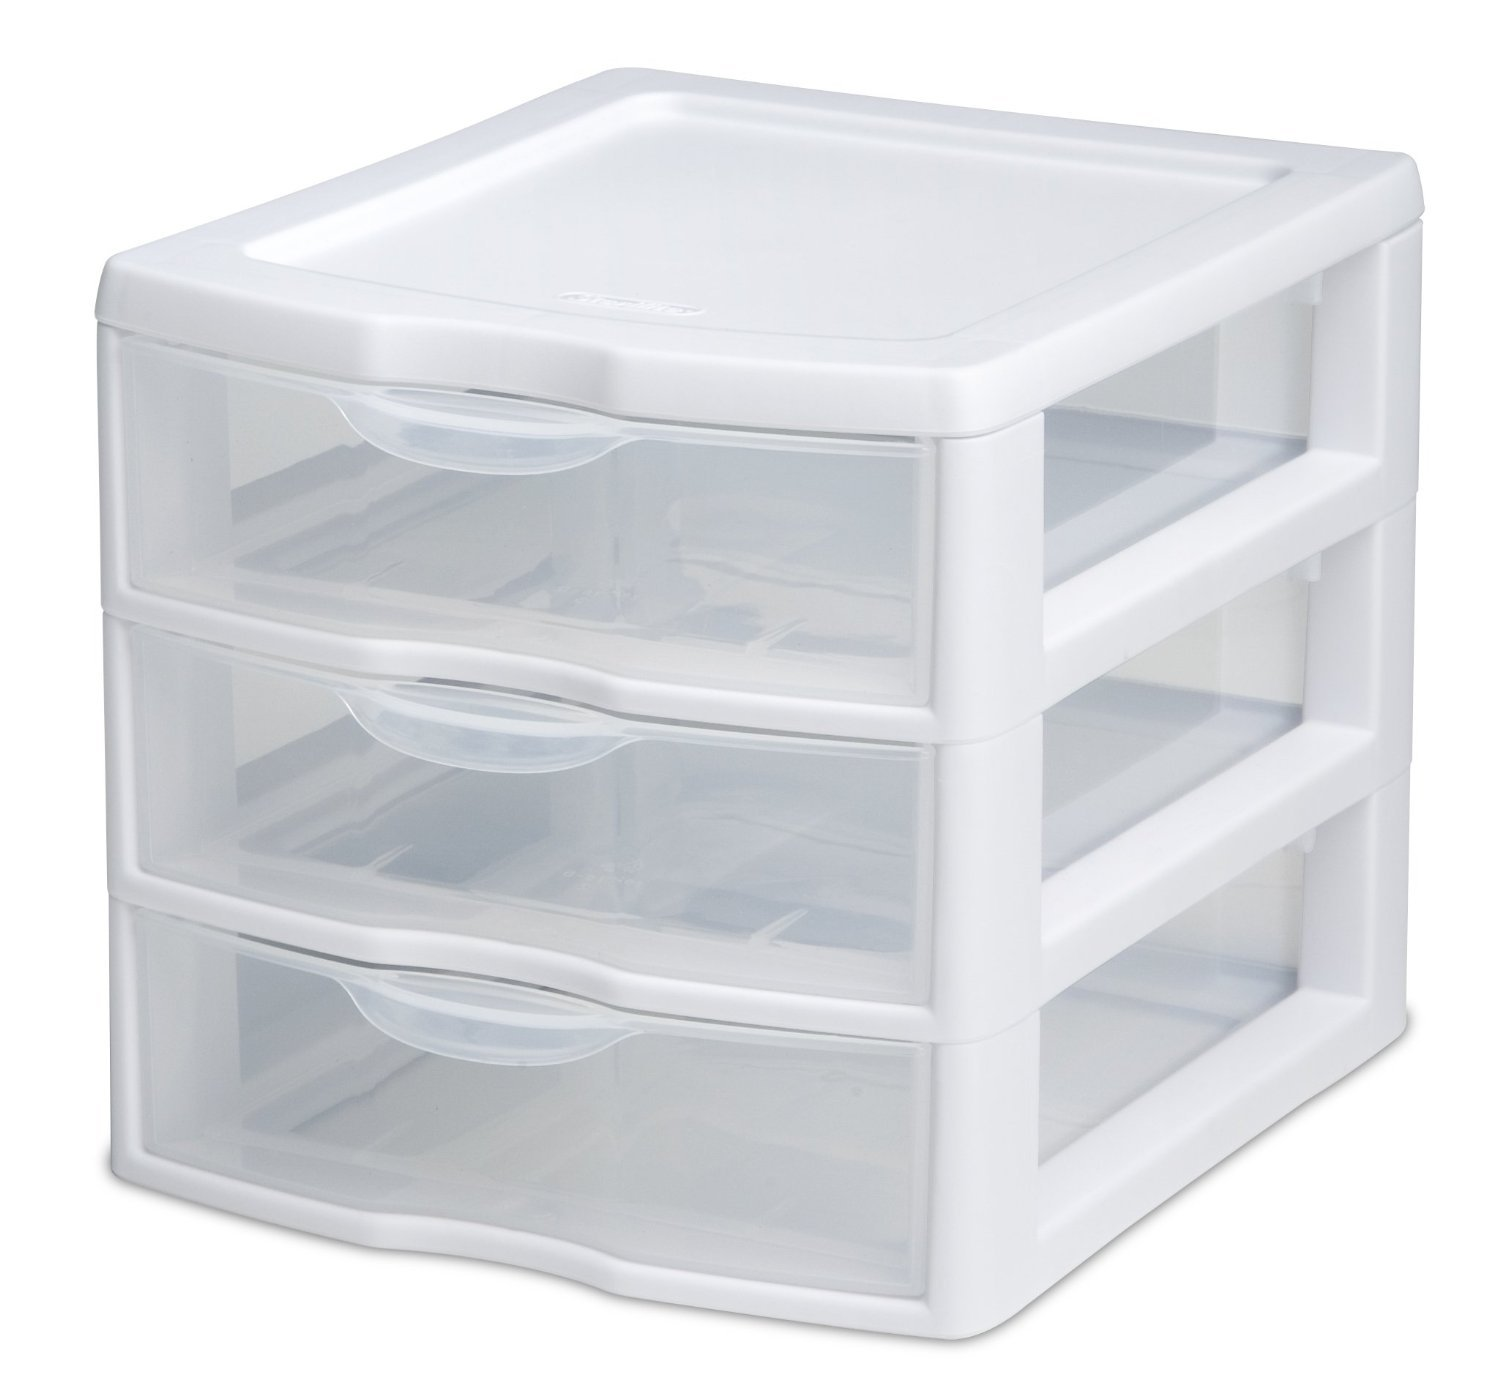 Amazon.com Sterilite 20738006 Small 3 Drawer Unit White Frame with Clear Drawers 6-Pack Home u0026 Kitchen  sc 1 st  Amazon.com & Amazon.com: Sterilite 20738006 Small 3 Drawer Unit White Frame with ...